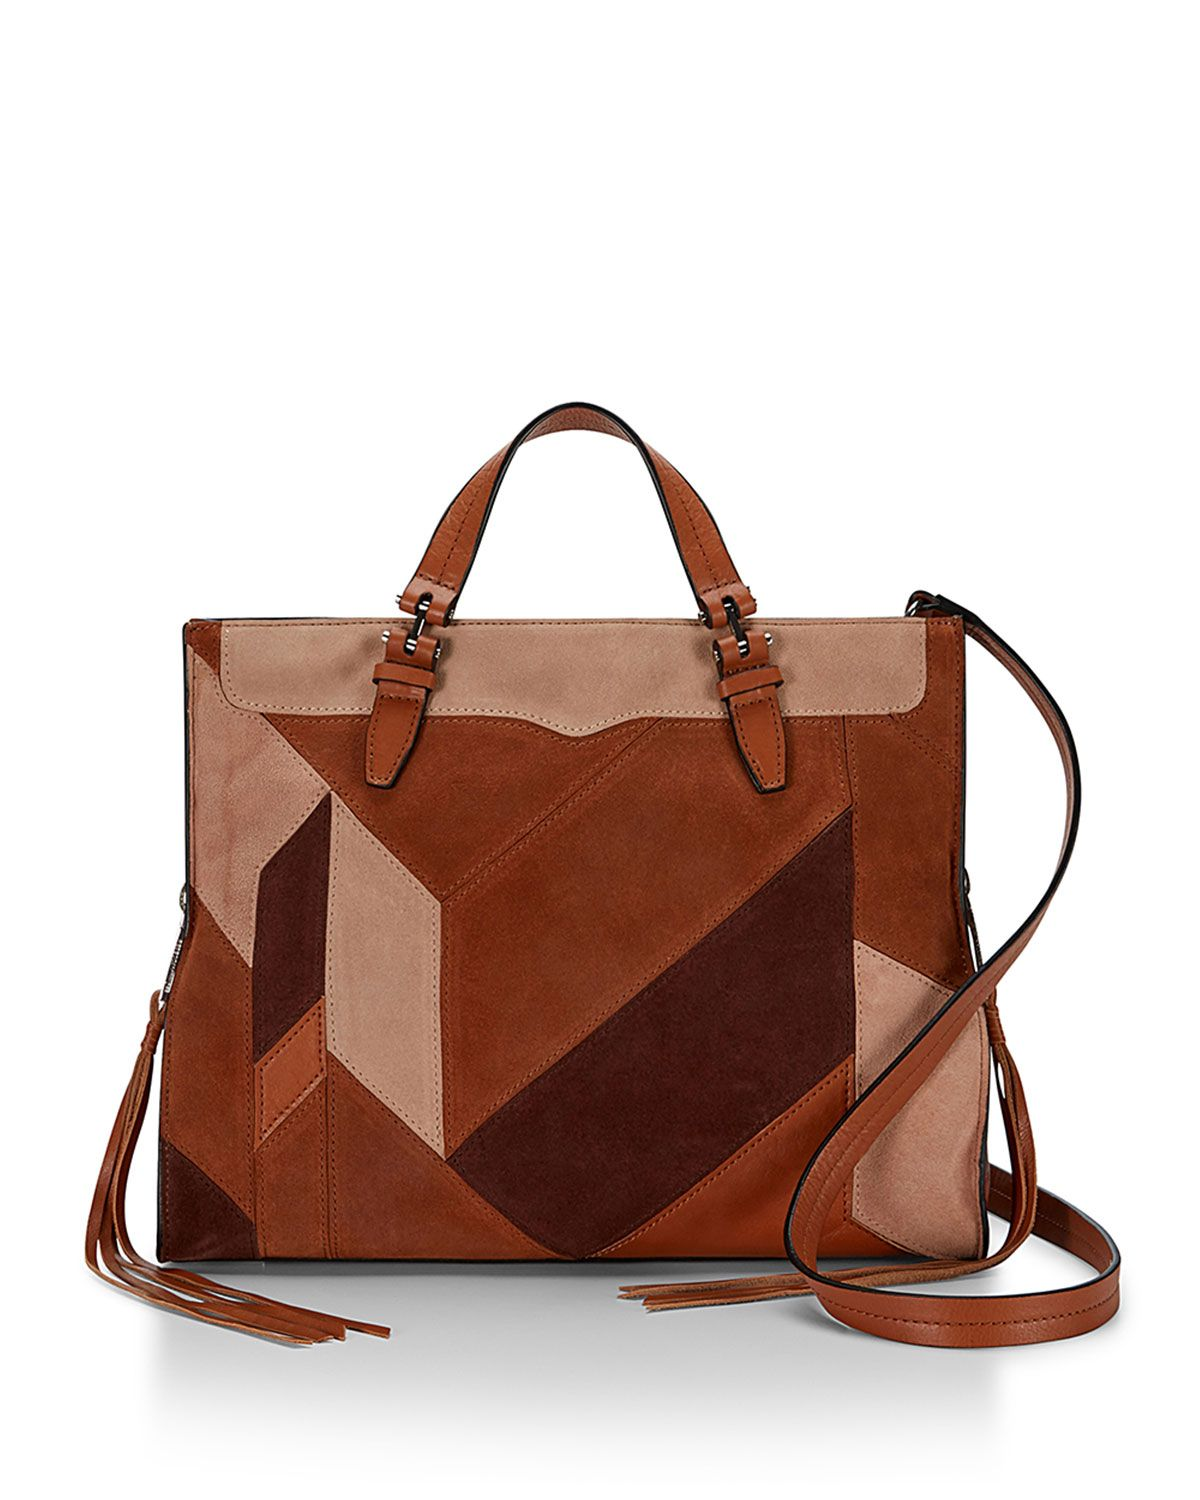 Blair Patchwork Suede Tote Bag, Almond Multi - Rebecca Minkoff